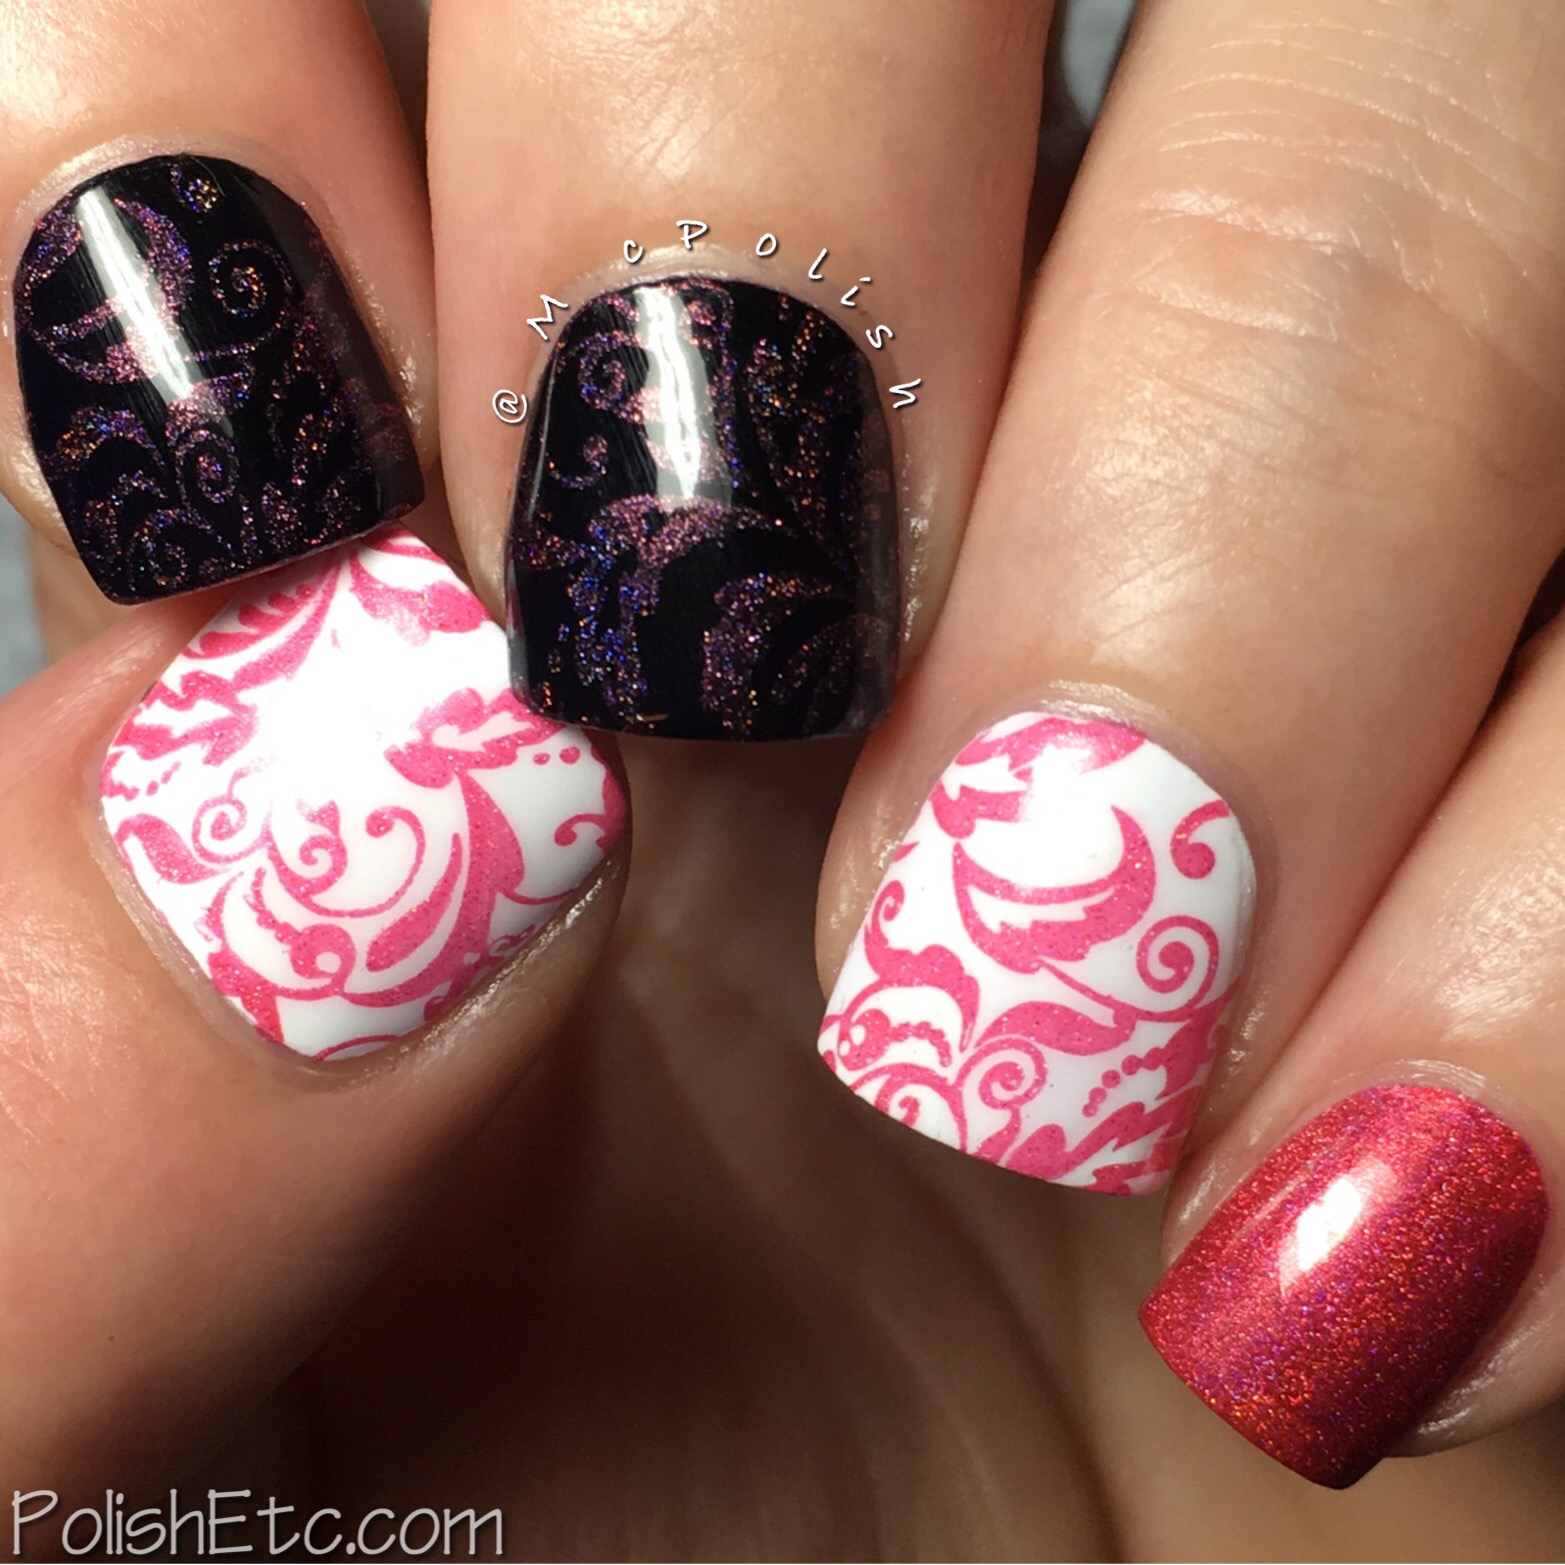 Celestial Cosmetics stamping polishes for Color4Nails - McPolish - Poppy